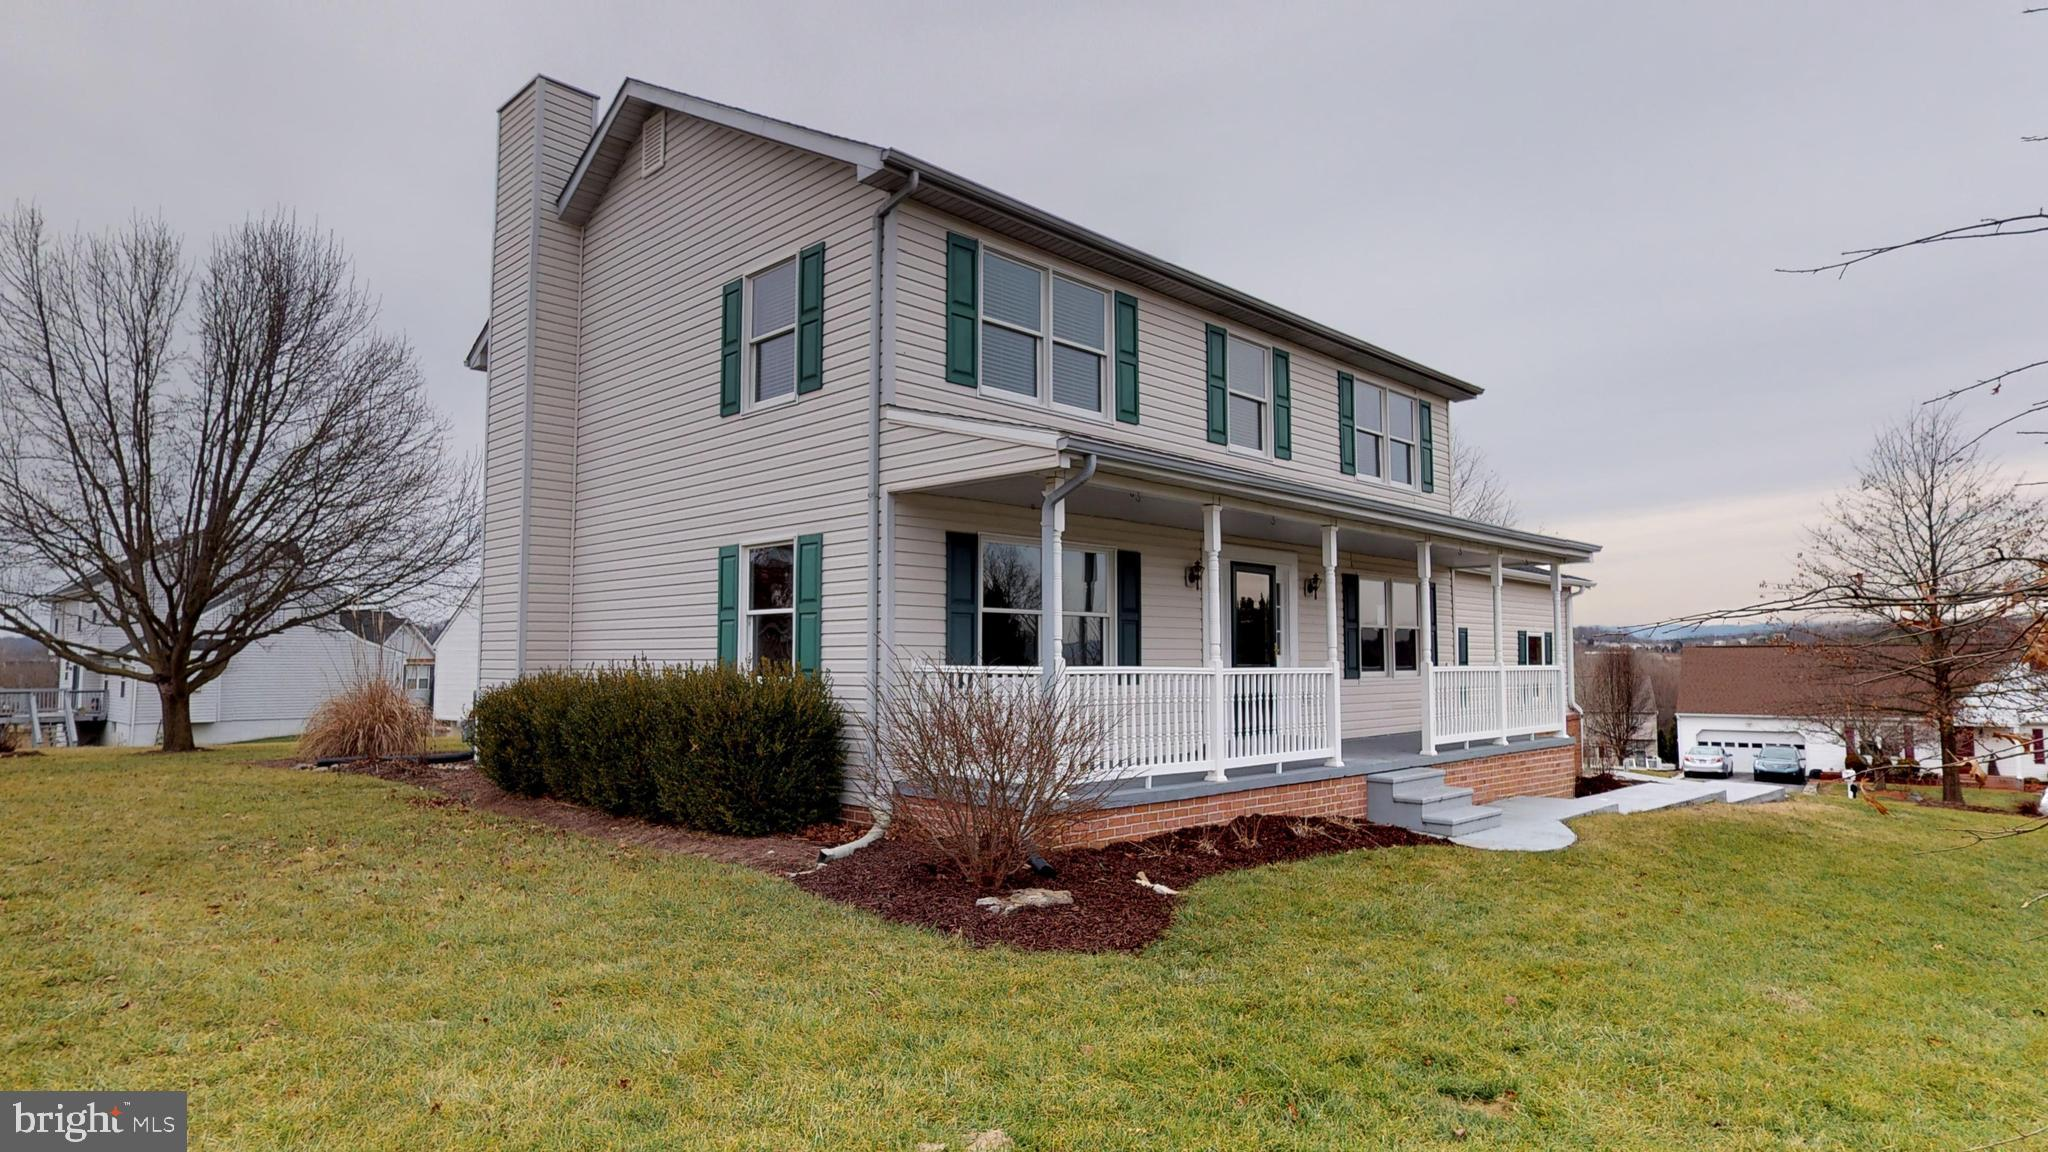 Lovely home in the desirable Stonebridge Community! This community has lots of amenities: community